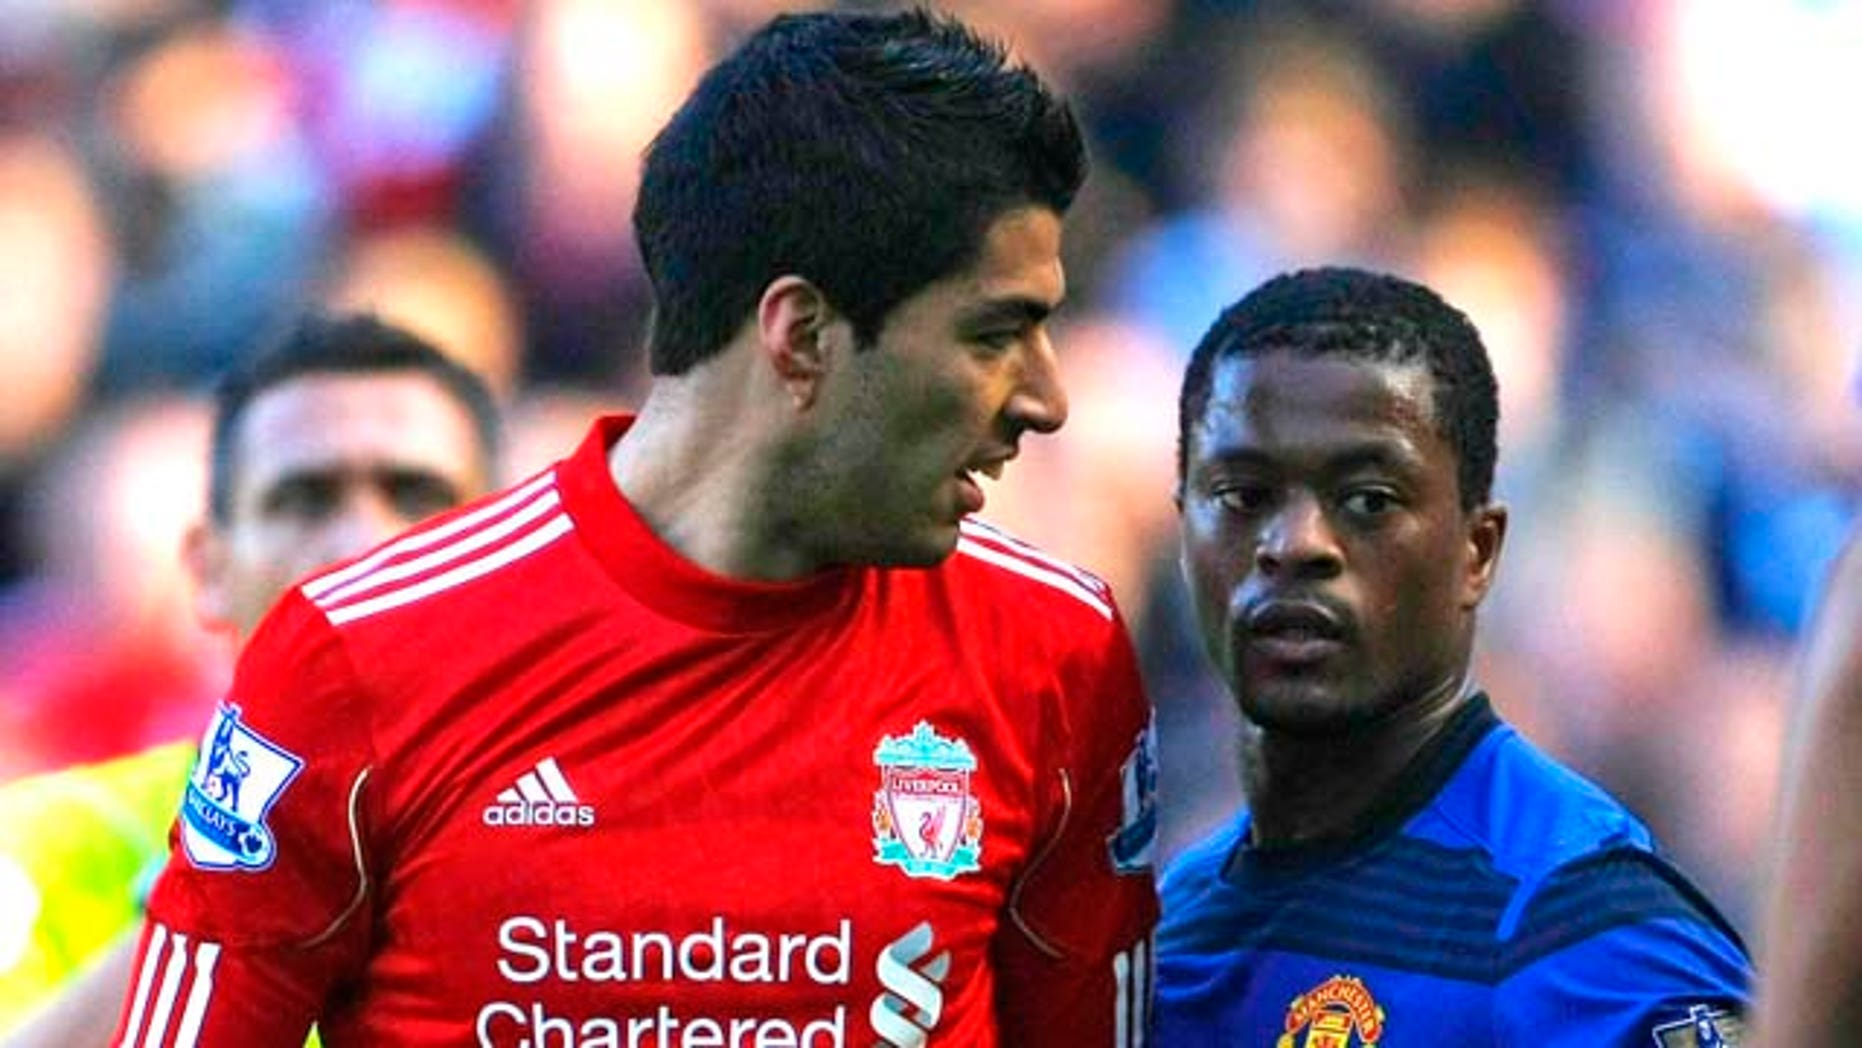 In this photo taken Saturday, Oct. 15, 2011, Manchester United's Patrice Evra argues with Liverpool's Luis Suarez, left, during their English Premier League soccer match at Anfield, Liverpool, England. The English Football Association has launched an investigation into allegations from Manchester United's Patrice Evra that he was racially abused by Liverpool striker Luis Suarez during Saturday's Premier League match. (AP Photo/Tim Hales)